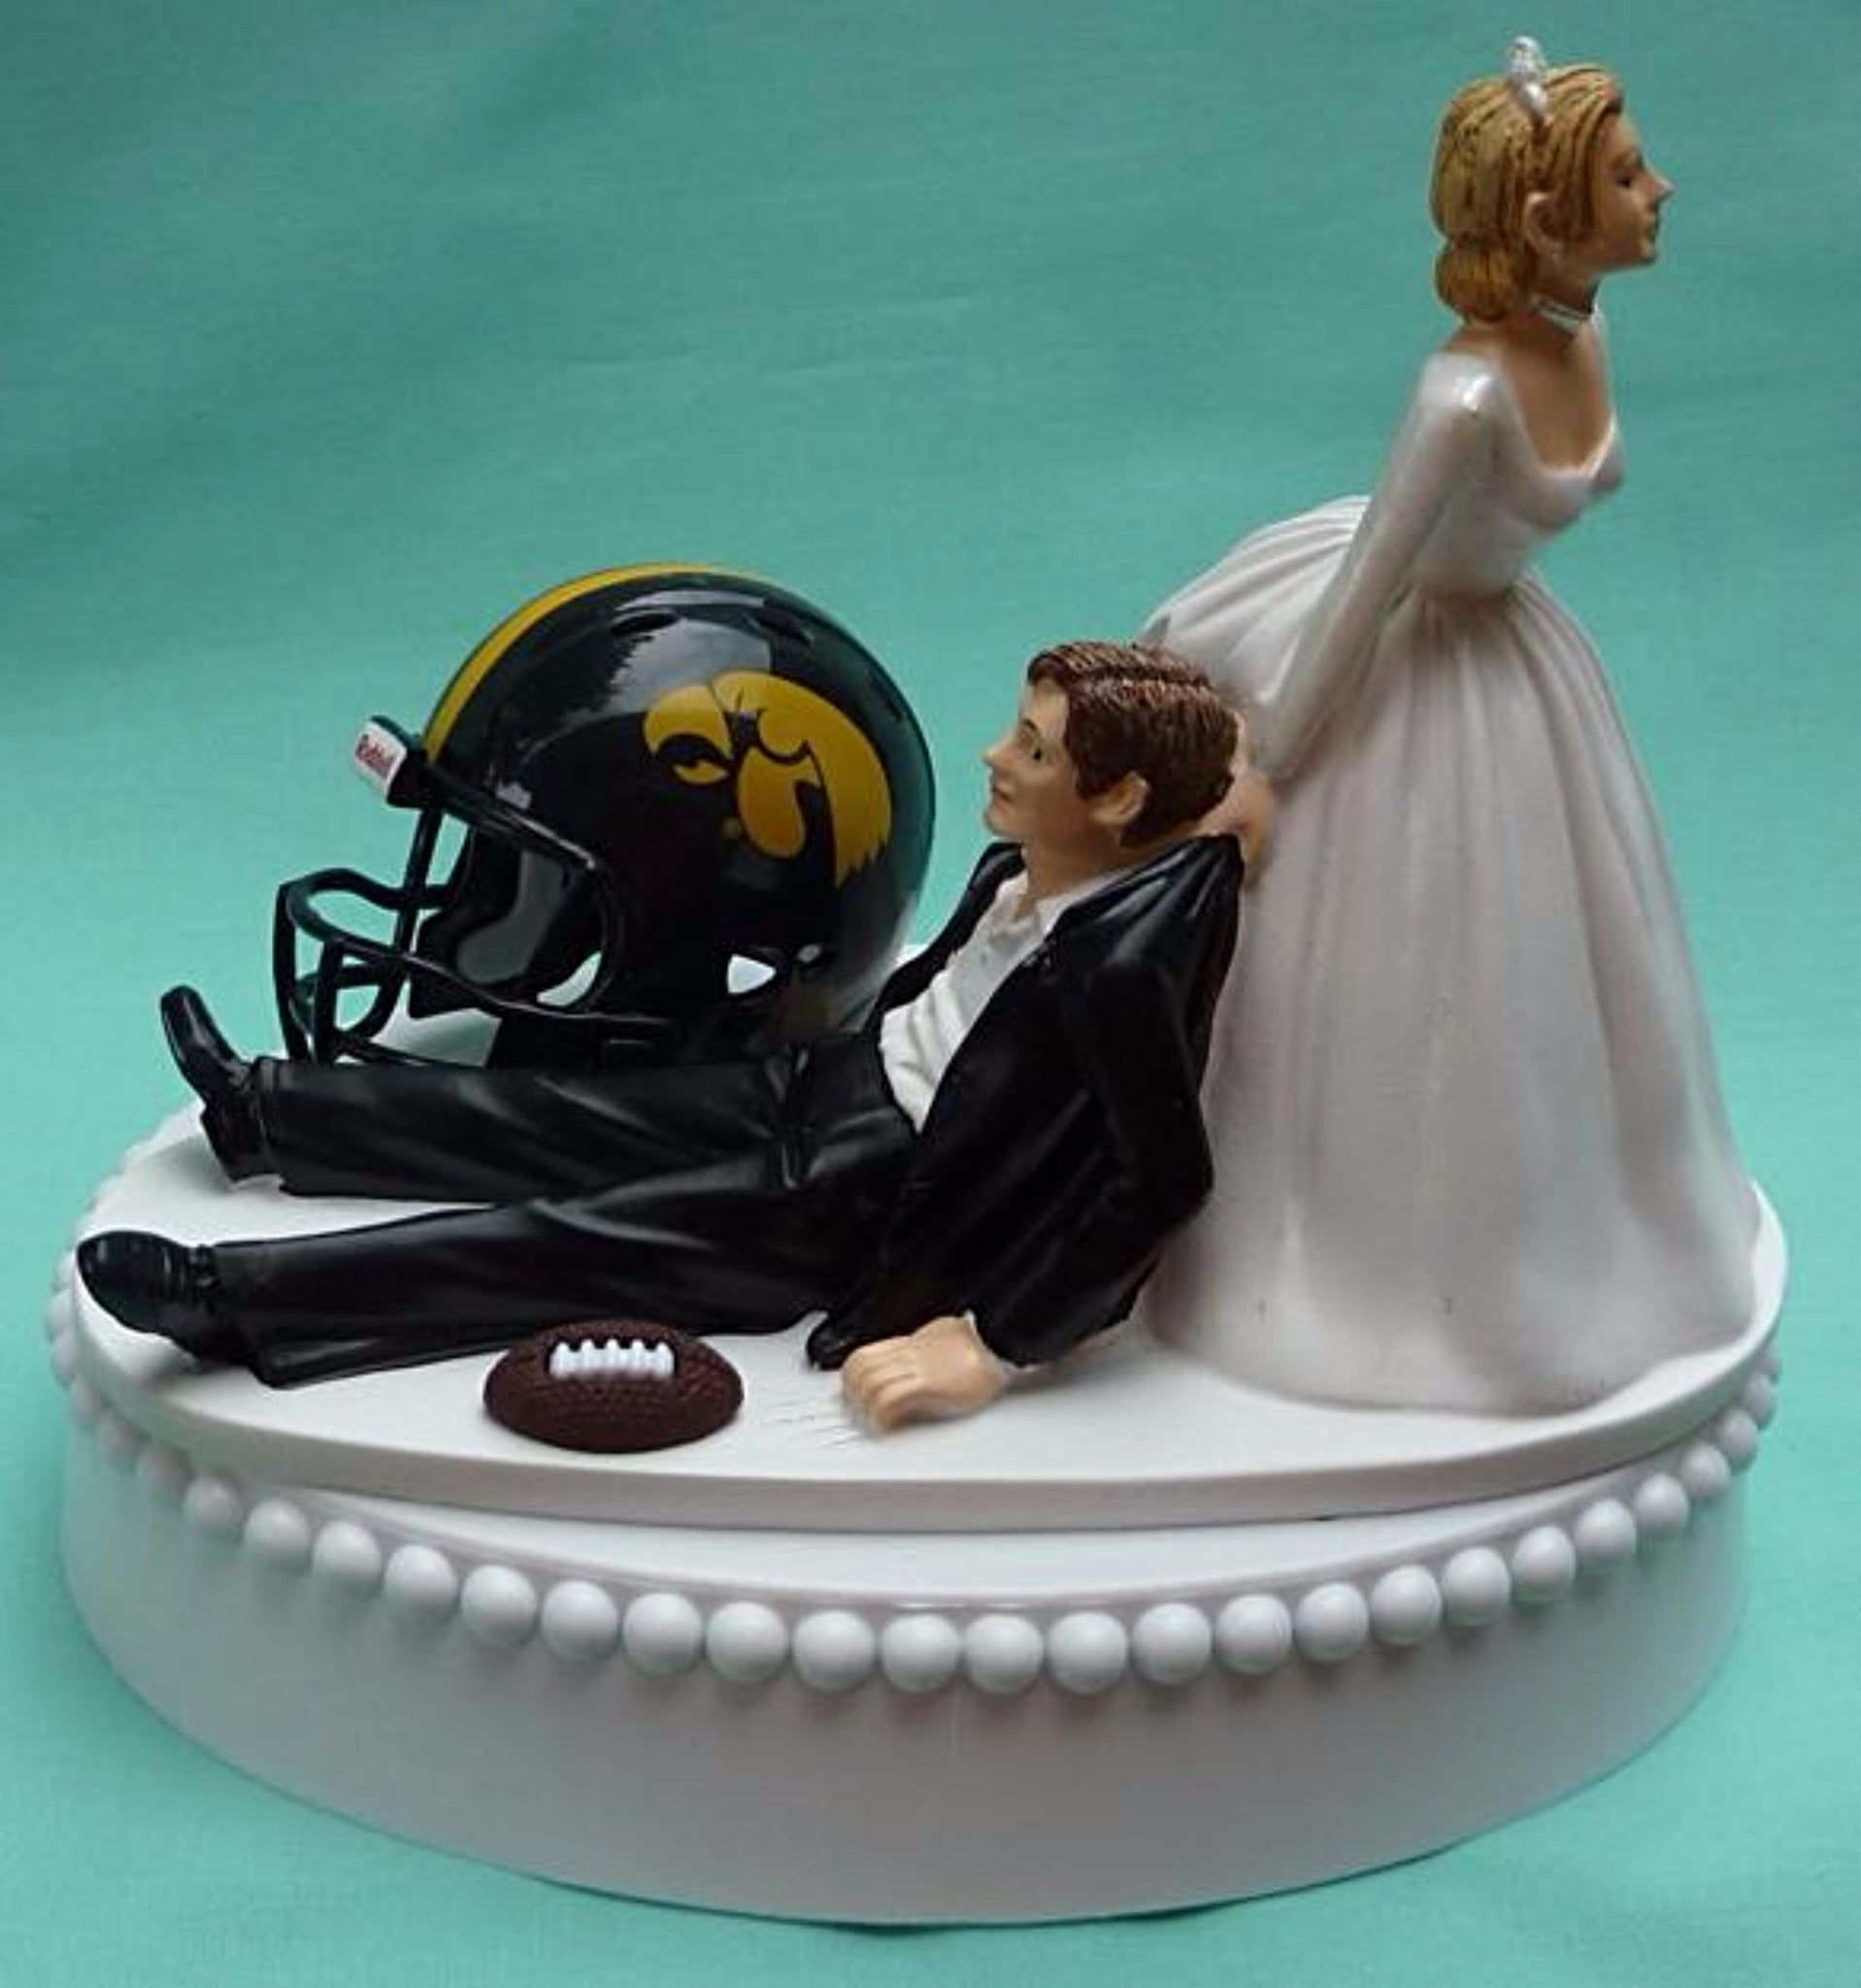 Iowa Hawkeyes wedding cake topper University of Iowa football sports fans funny bride dragging groom humorous ball helmet green turf reception gift Fun Wedding Things